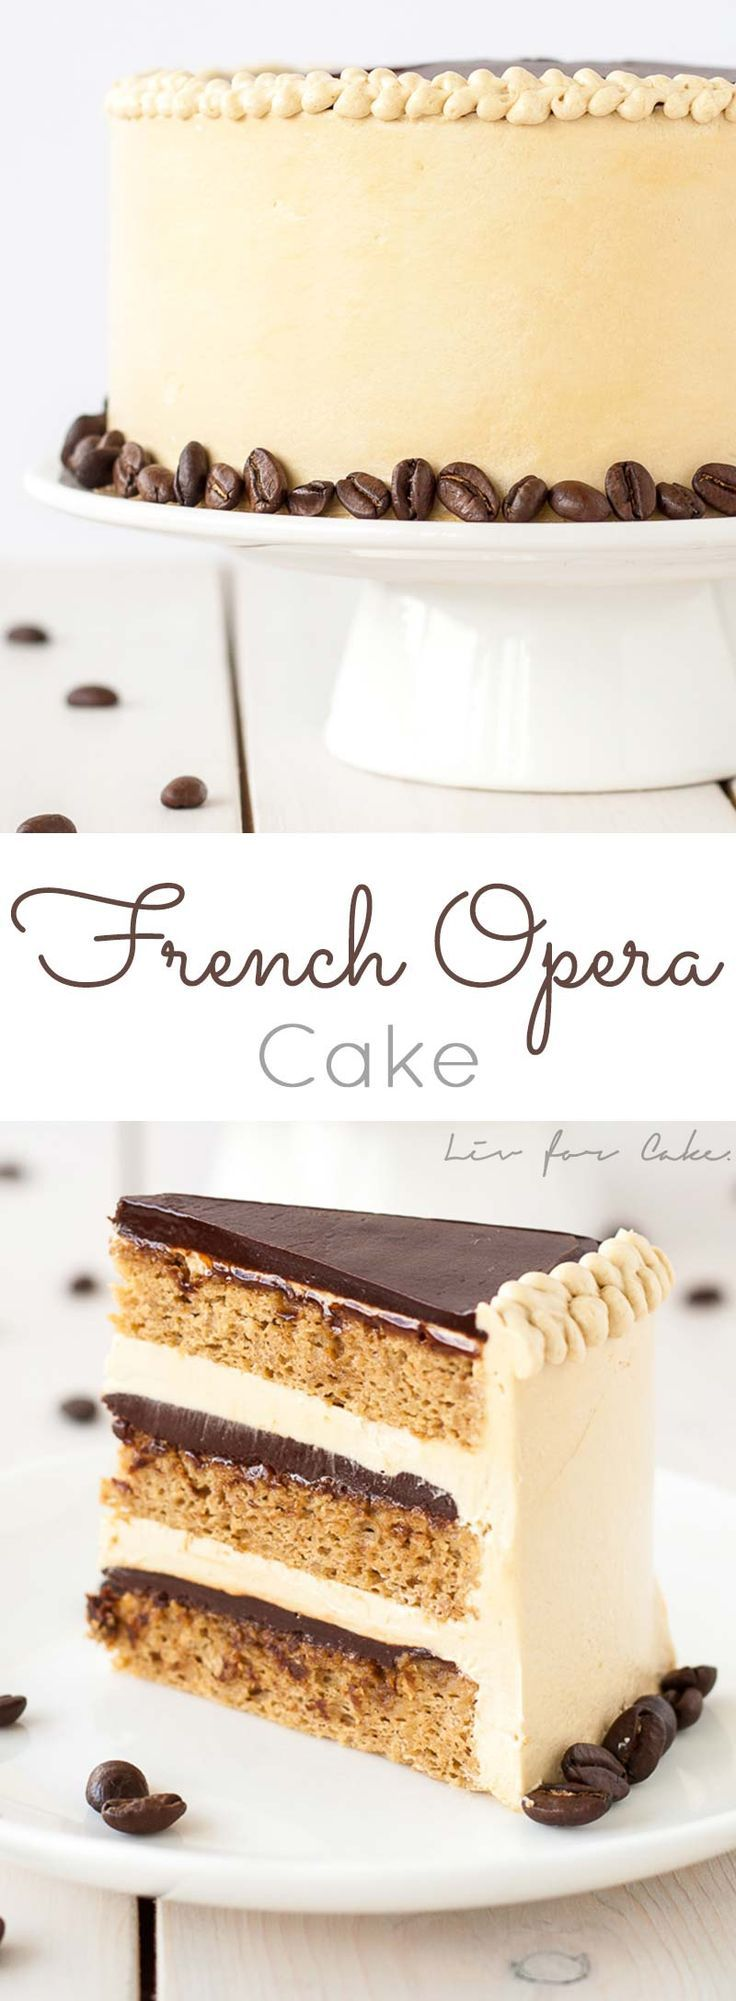 A modern take on a French classic this decadent Opera cake is rich